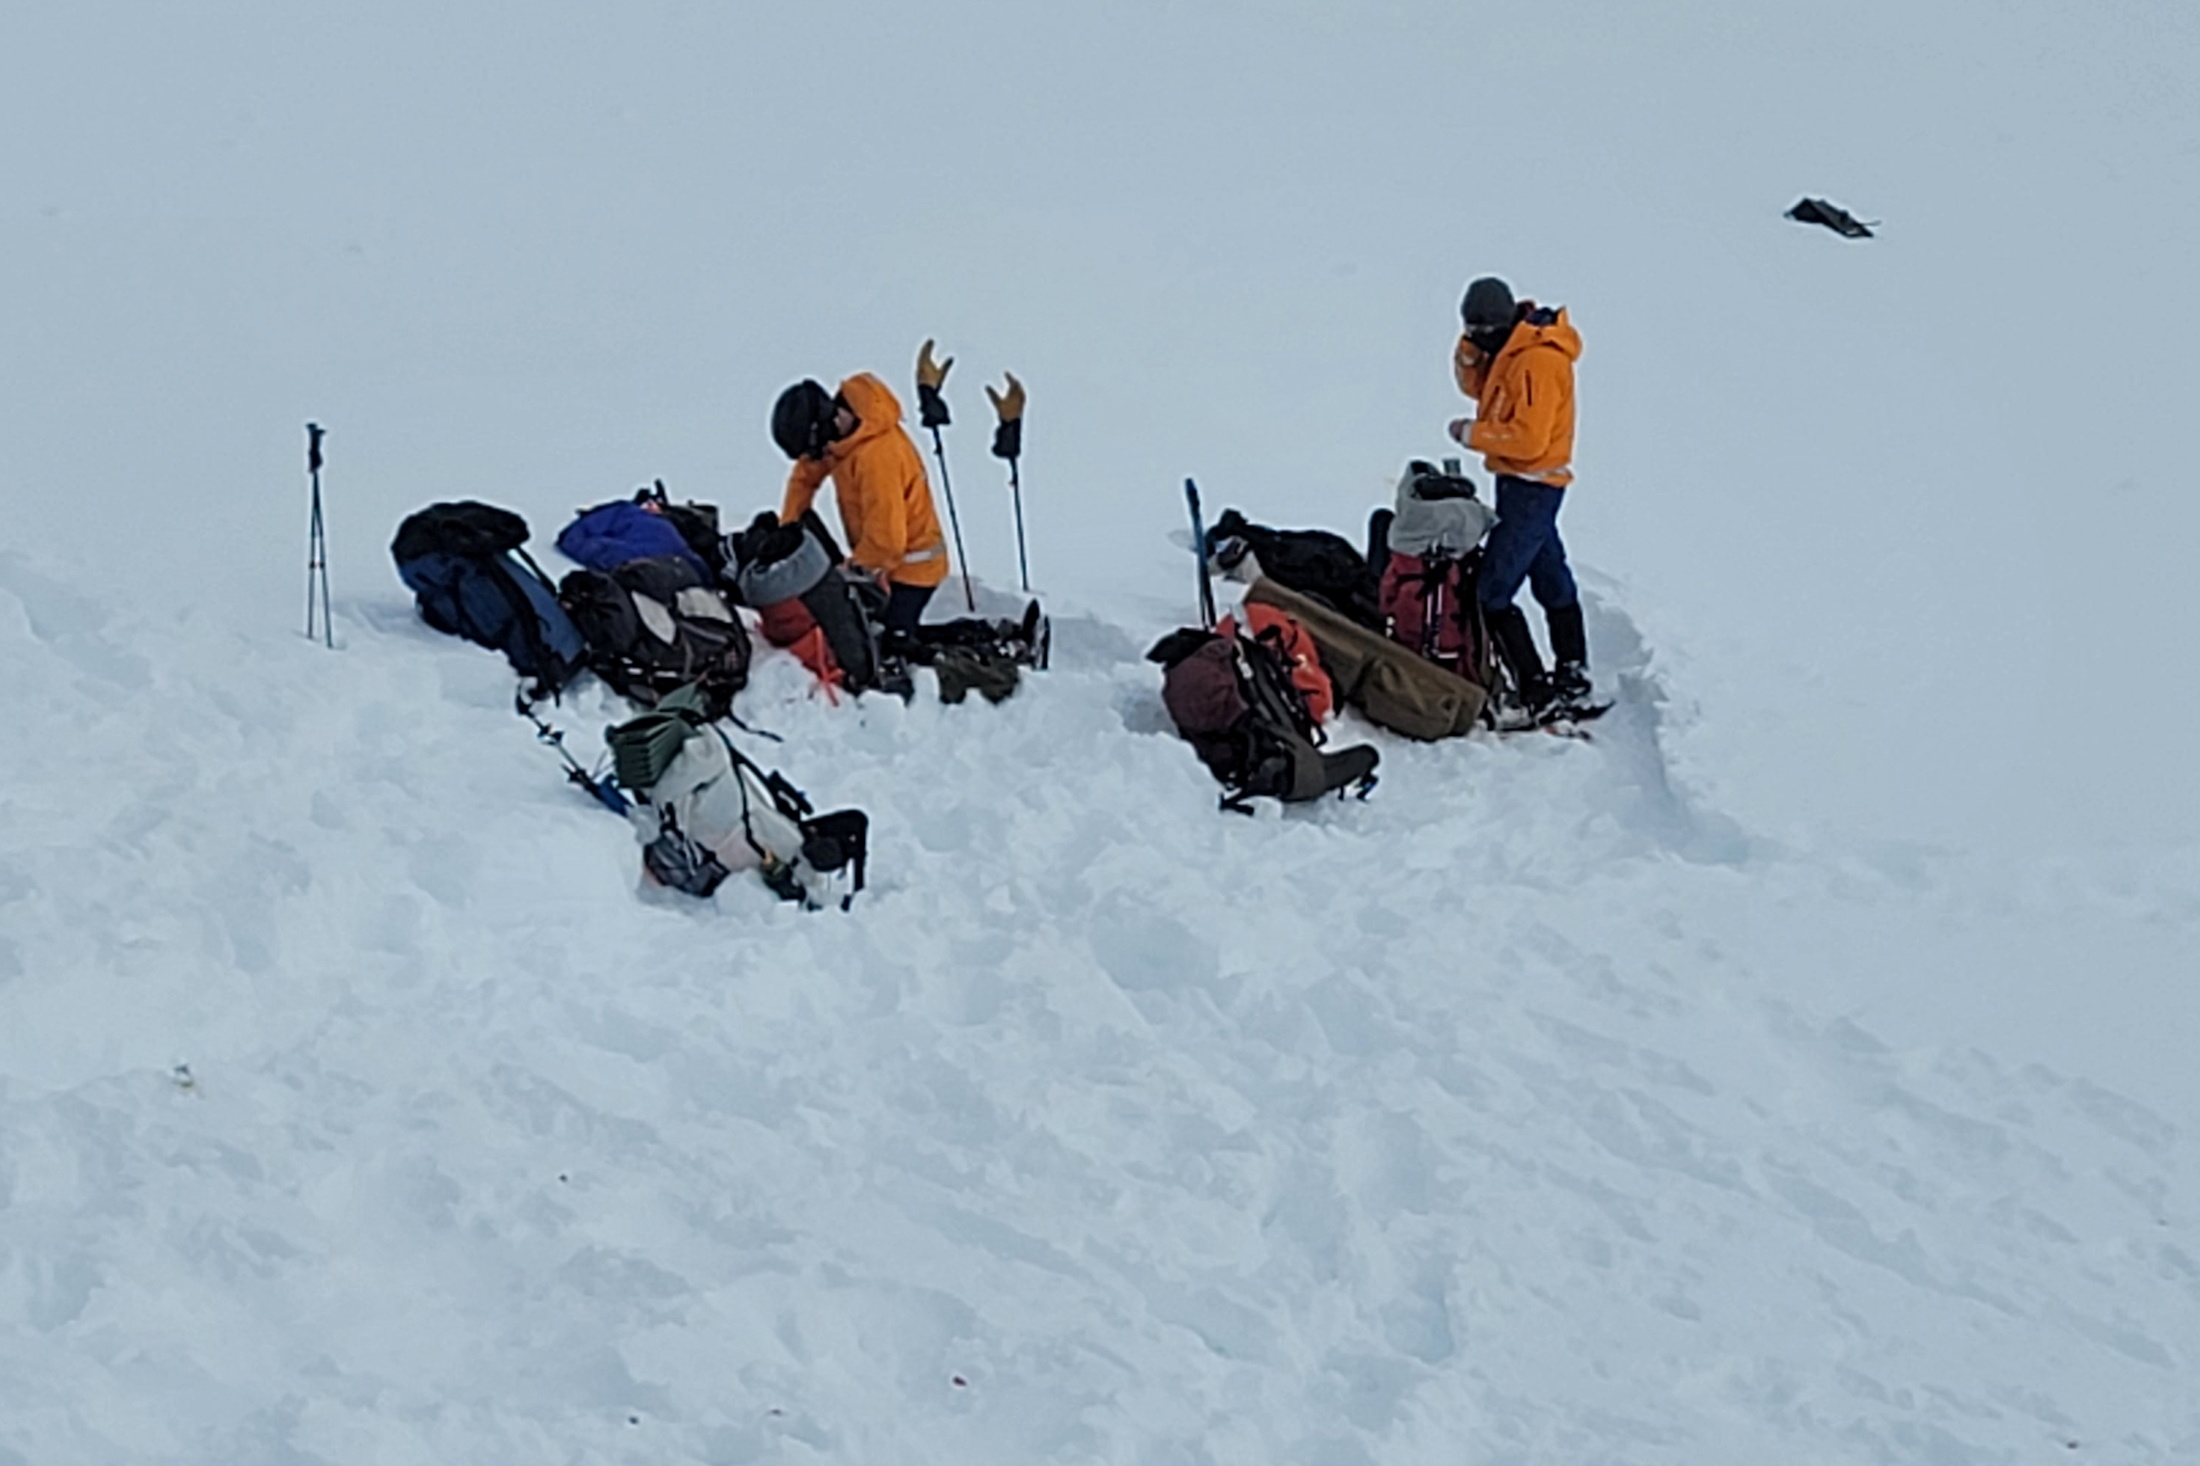 Alaska Mountain Rescue Group volunteers assemble near the site of a helicopter crash which killed five people, including Petr Kellner, the Czech Republic's richest man and founder of investment group PPF, near Knik Glacier, northeast of Anchorage, Alaska, U.S.  March 28, 2021.  Alaska Mountain Rescue Group/Handout via REUTERS